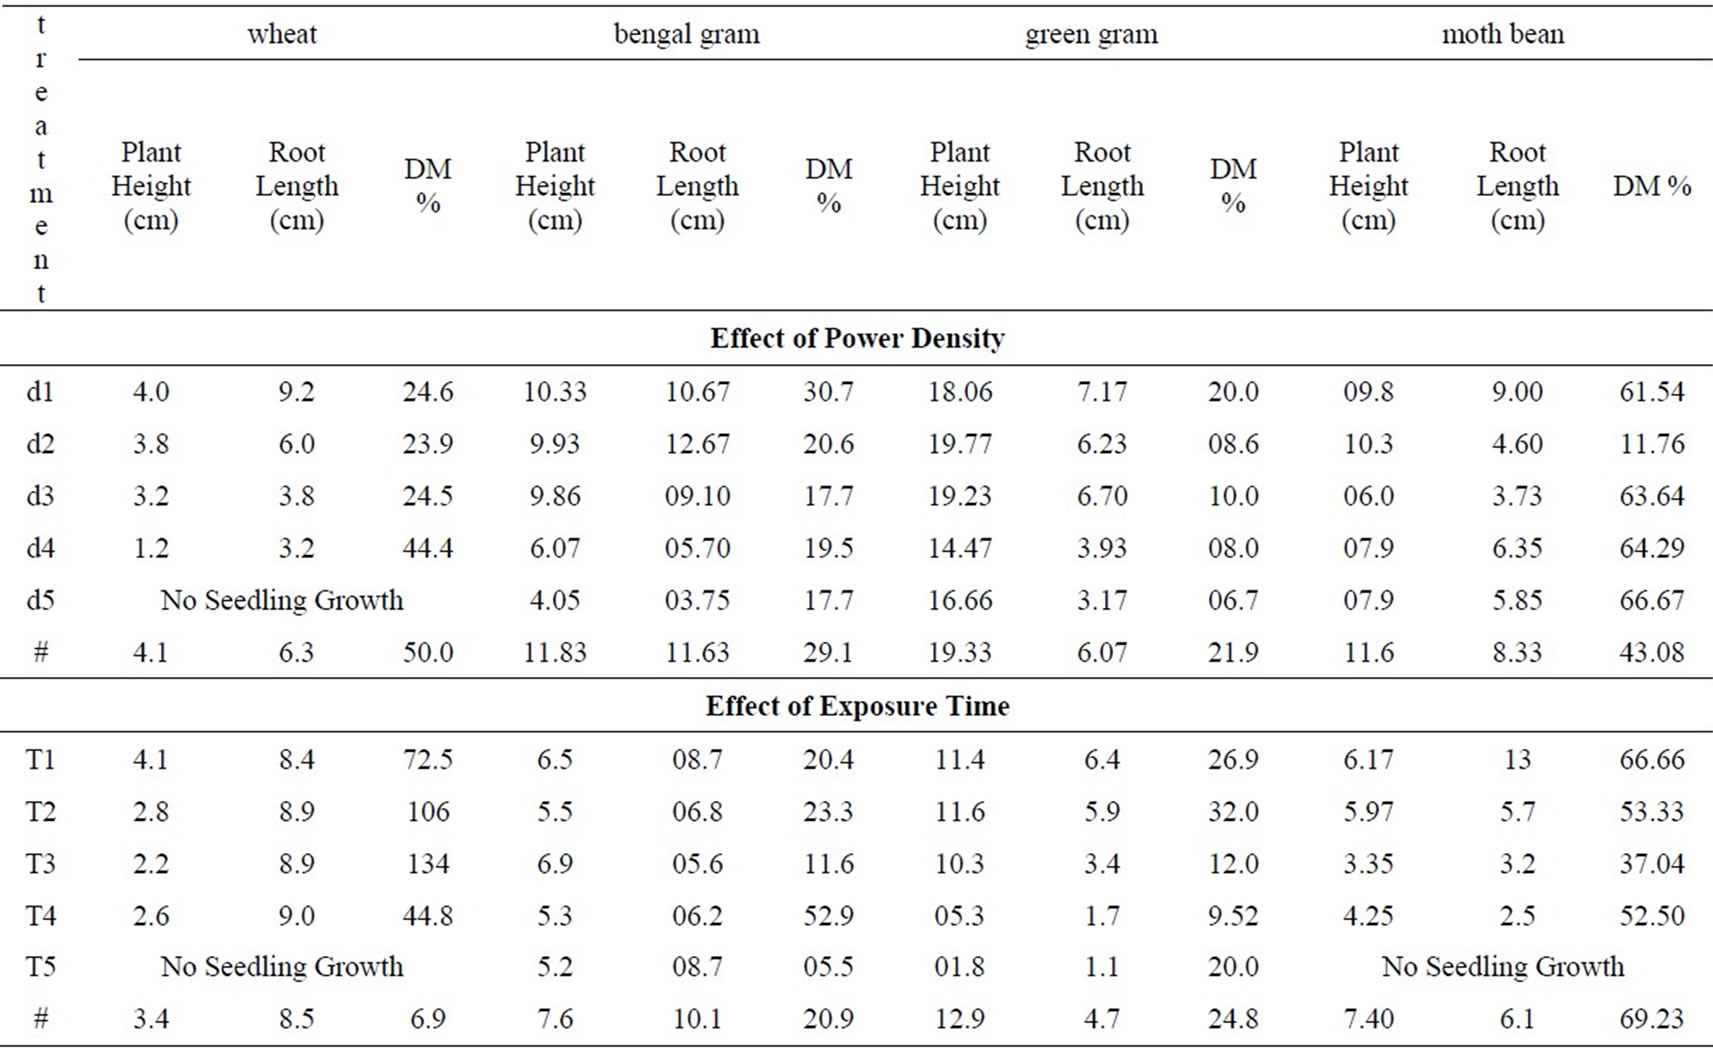 effects of microwave on seed exposure There was no significant difference in seed survival between the various microwave treatment combinations, compared with each other however, all combinations of microwave treatment had a significant effect on seed survival compared with the controls.